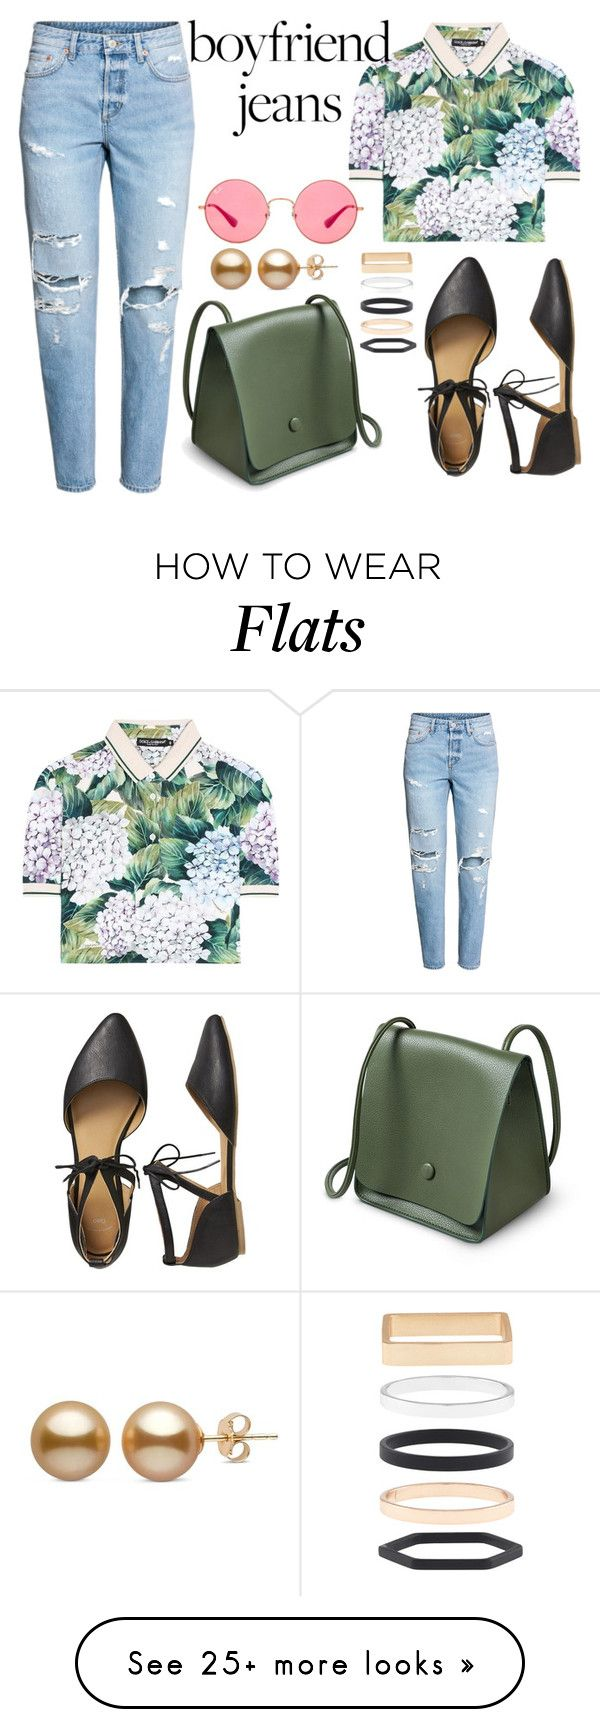 """""""Borrowed from the Boys: Boyfriend Jeans"""" by joslynaurora on Polyvore featuring Dolce&Gabbana, Gap, Ray-Ban, Accessorize and boyfriendjeans"""